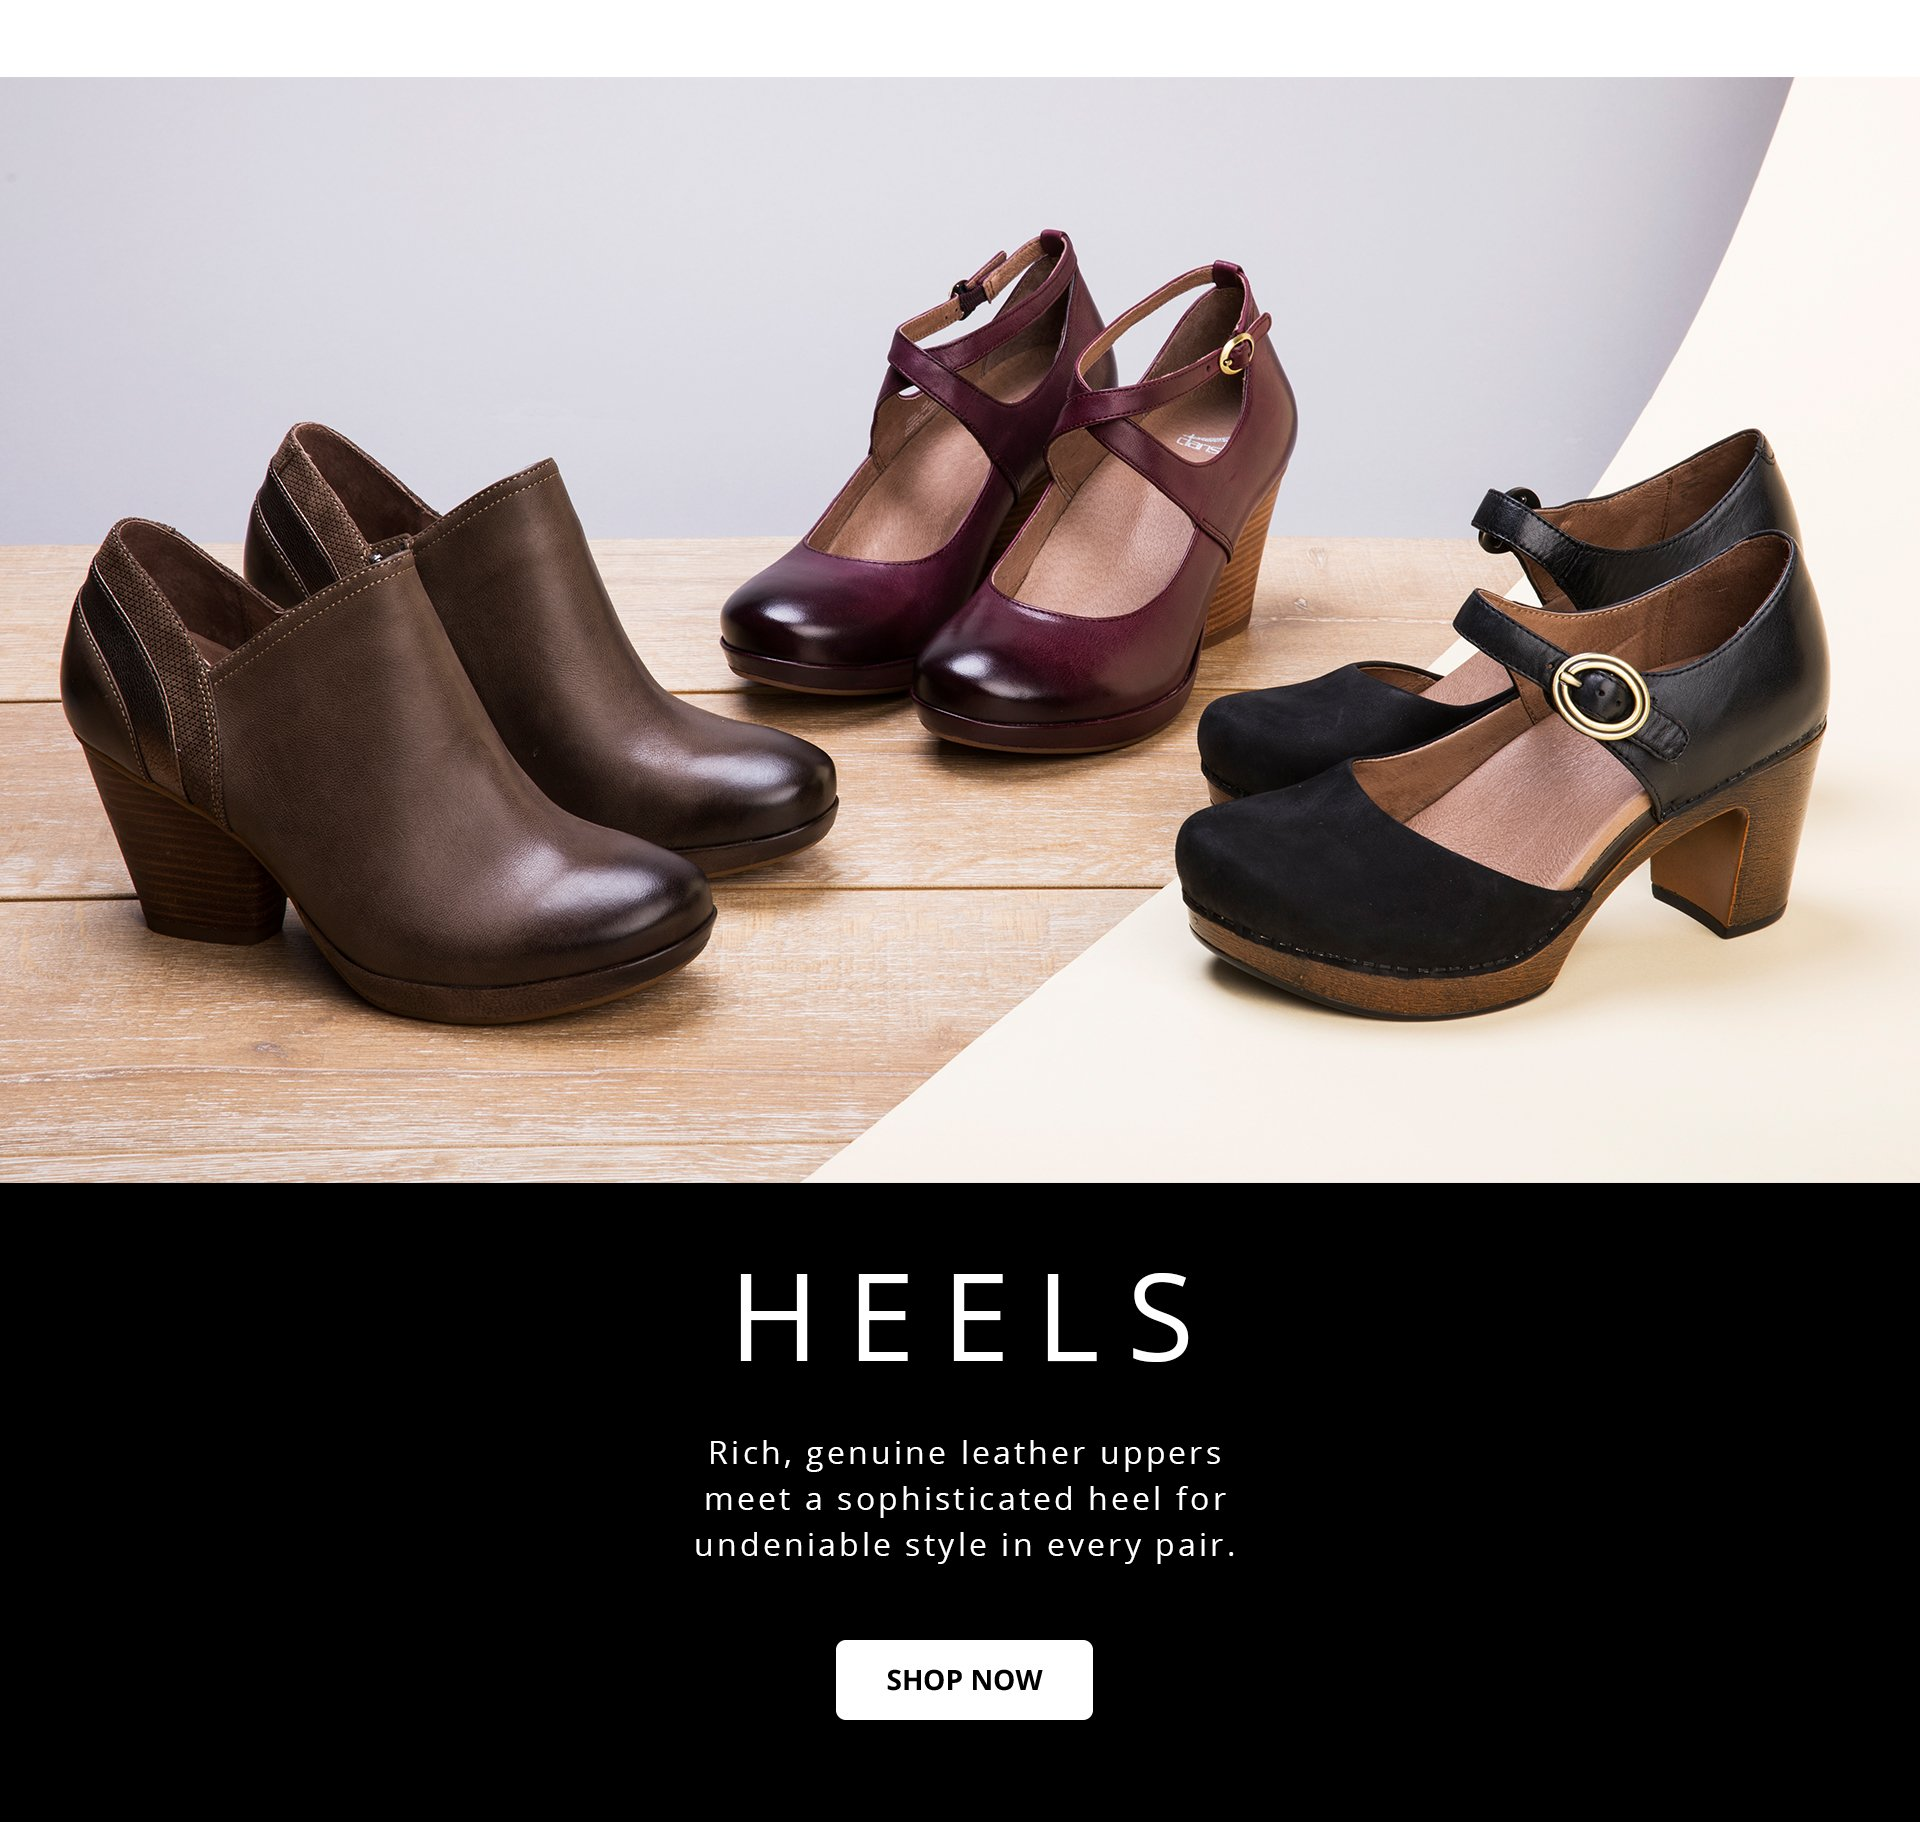 Heels: Rich, genuine leather uppers meet a sophisticated heel for undeniable style in every pair.